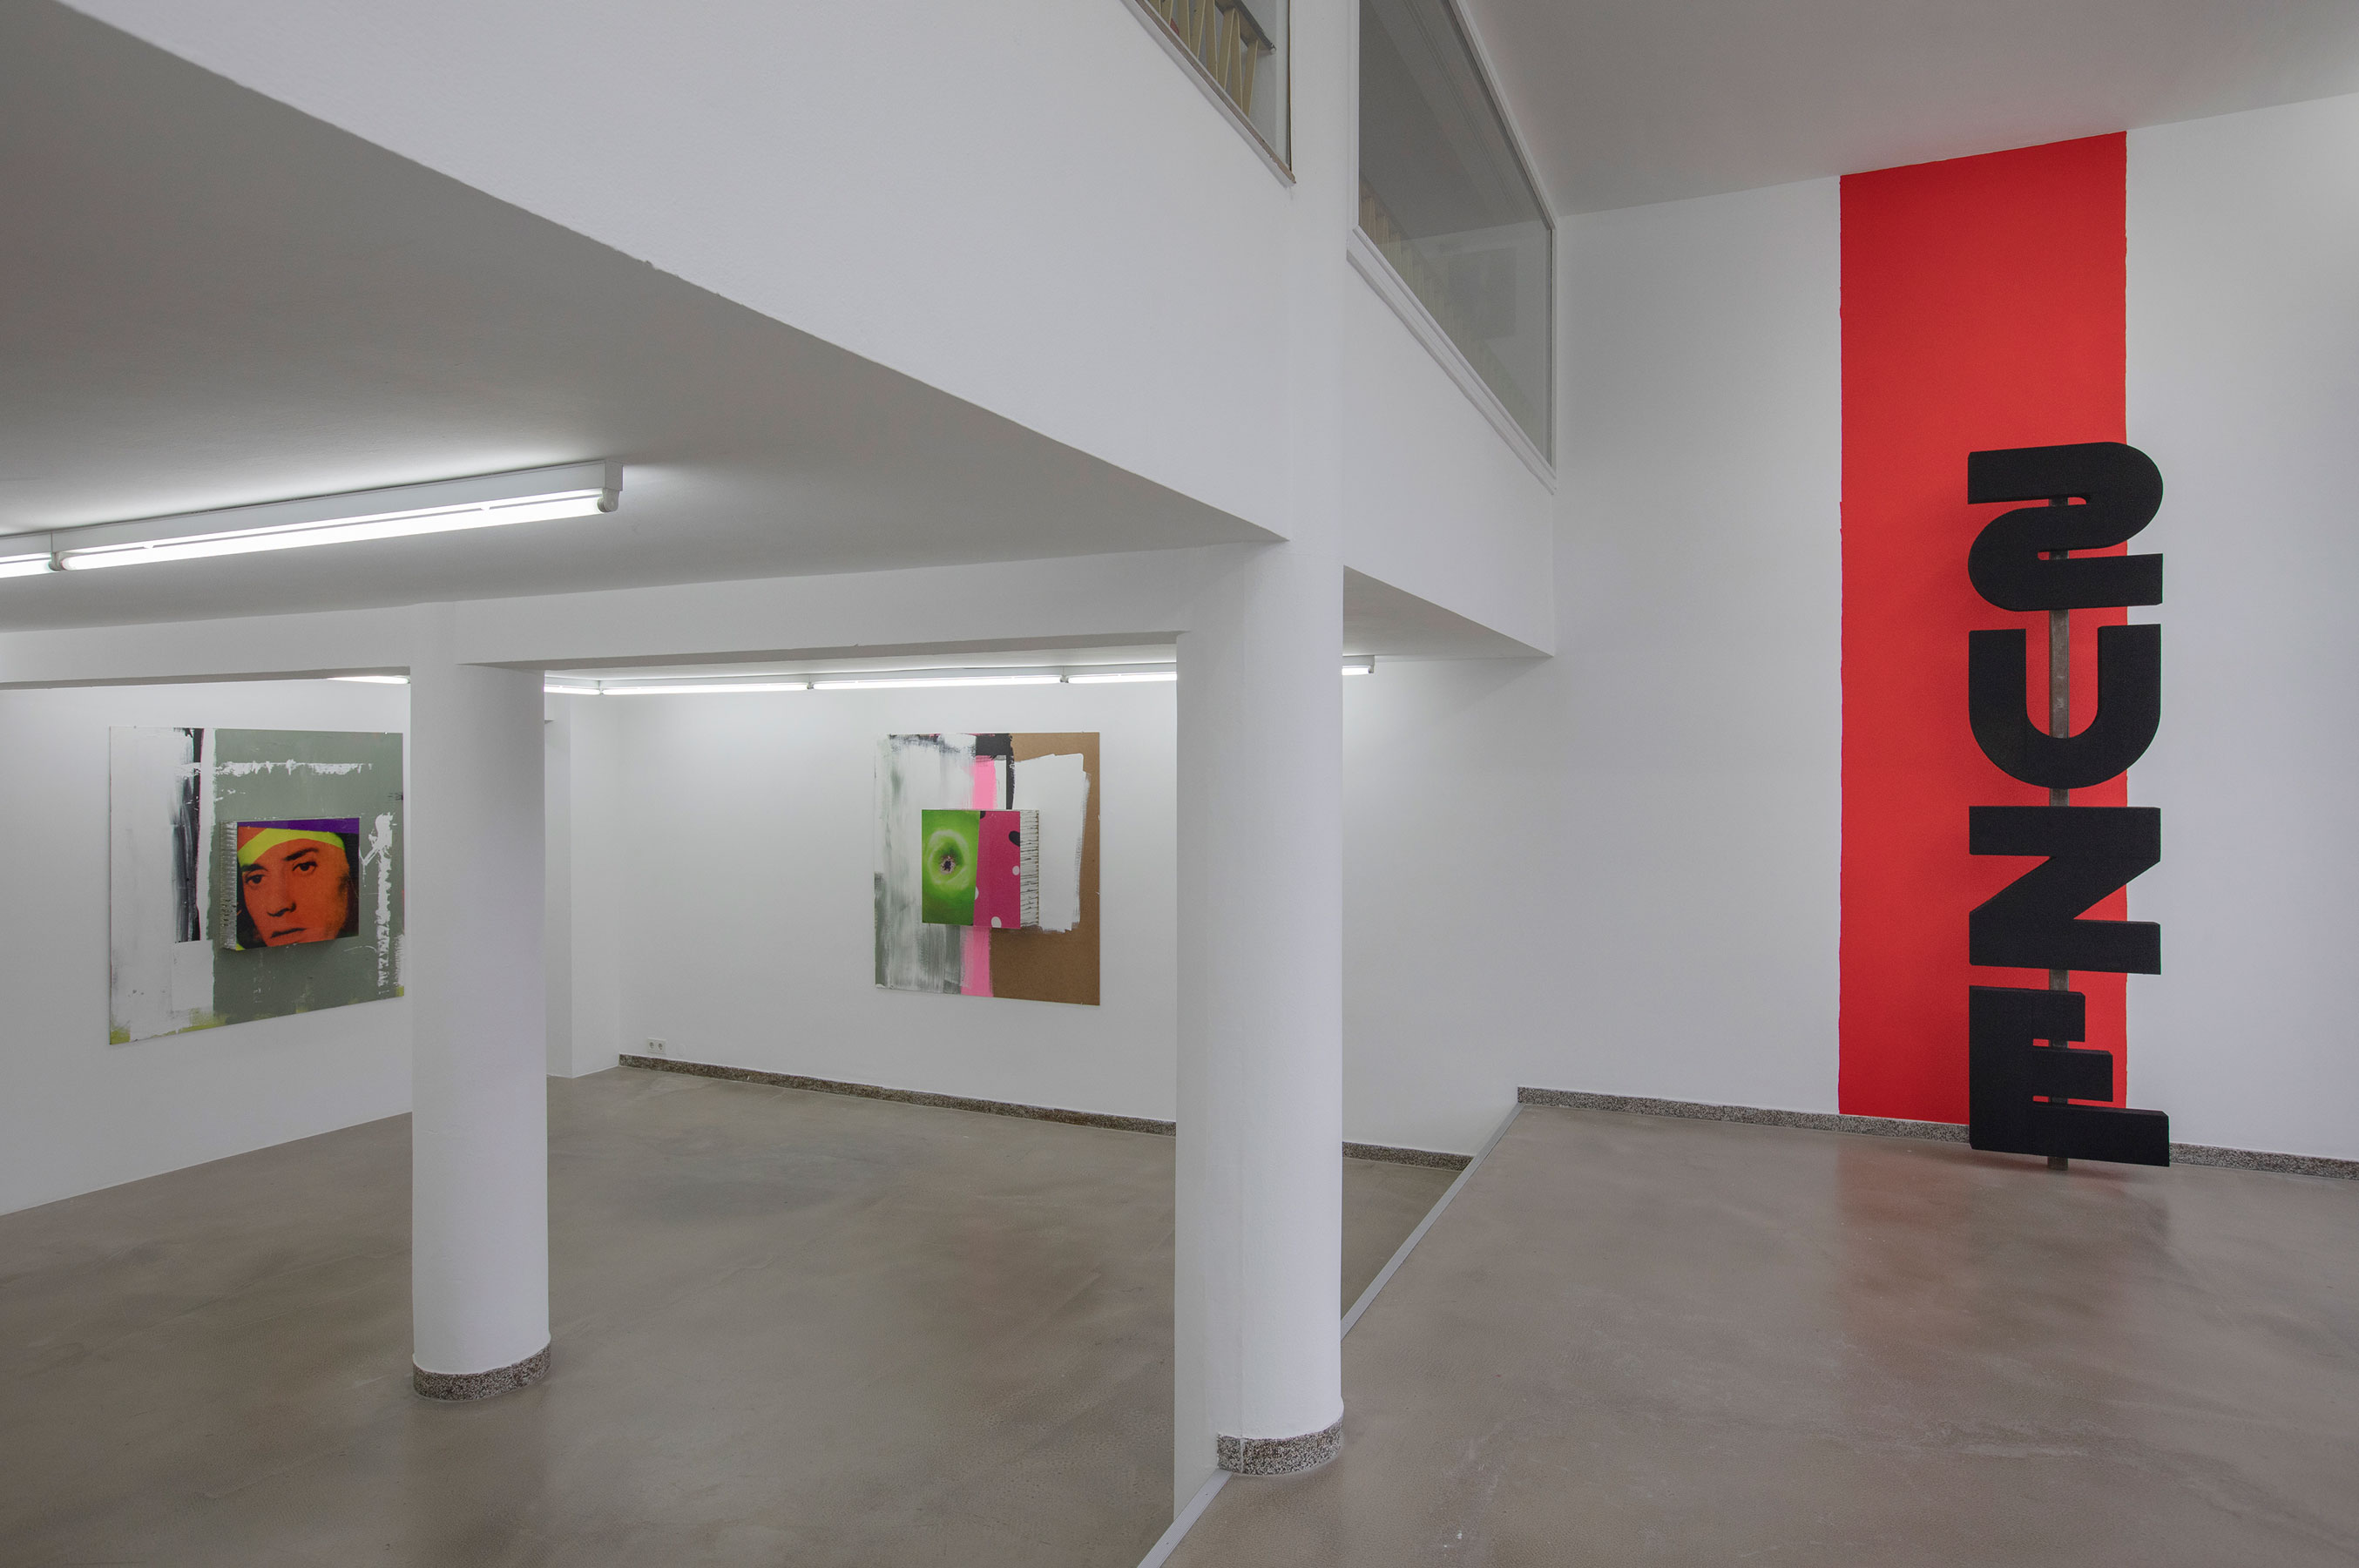 Back-to-back_mueller_harald_f_installation-view_2019_02